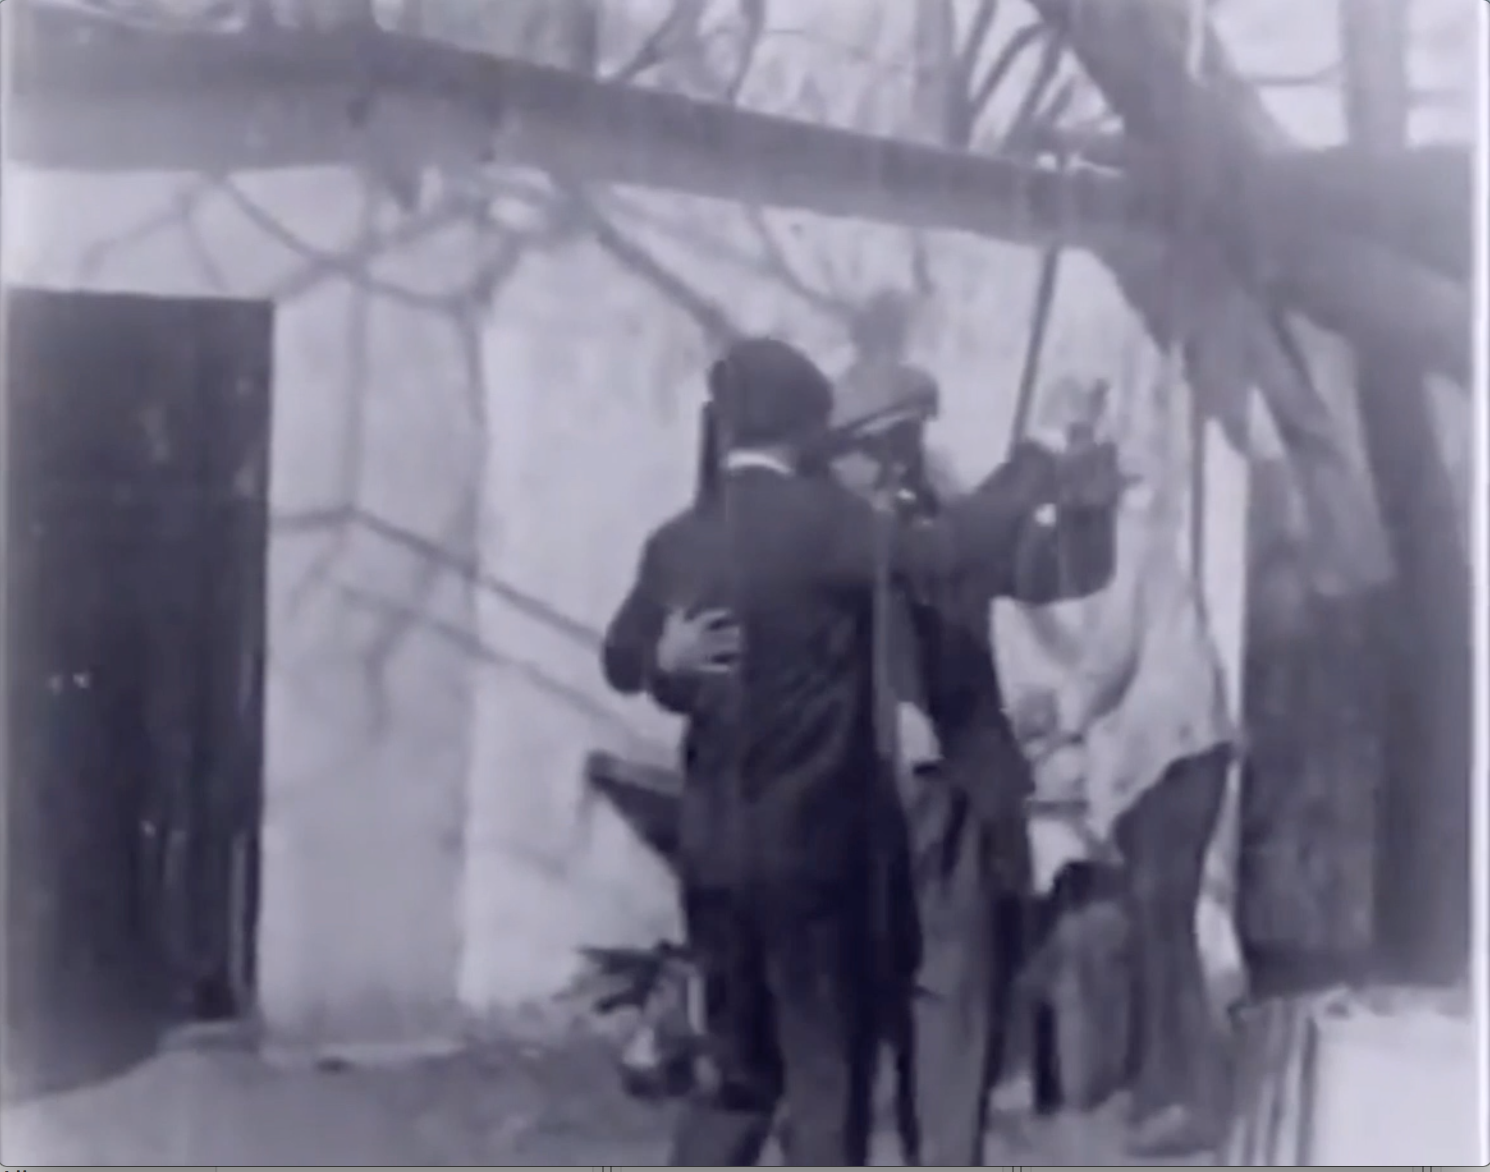 Film clip: Men Dancing Tango Together, Uruguay, 1928